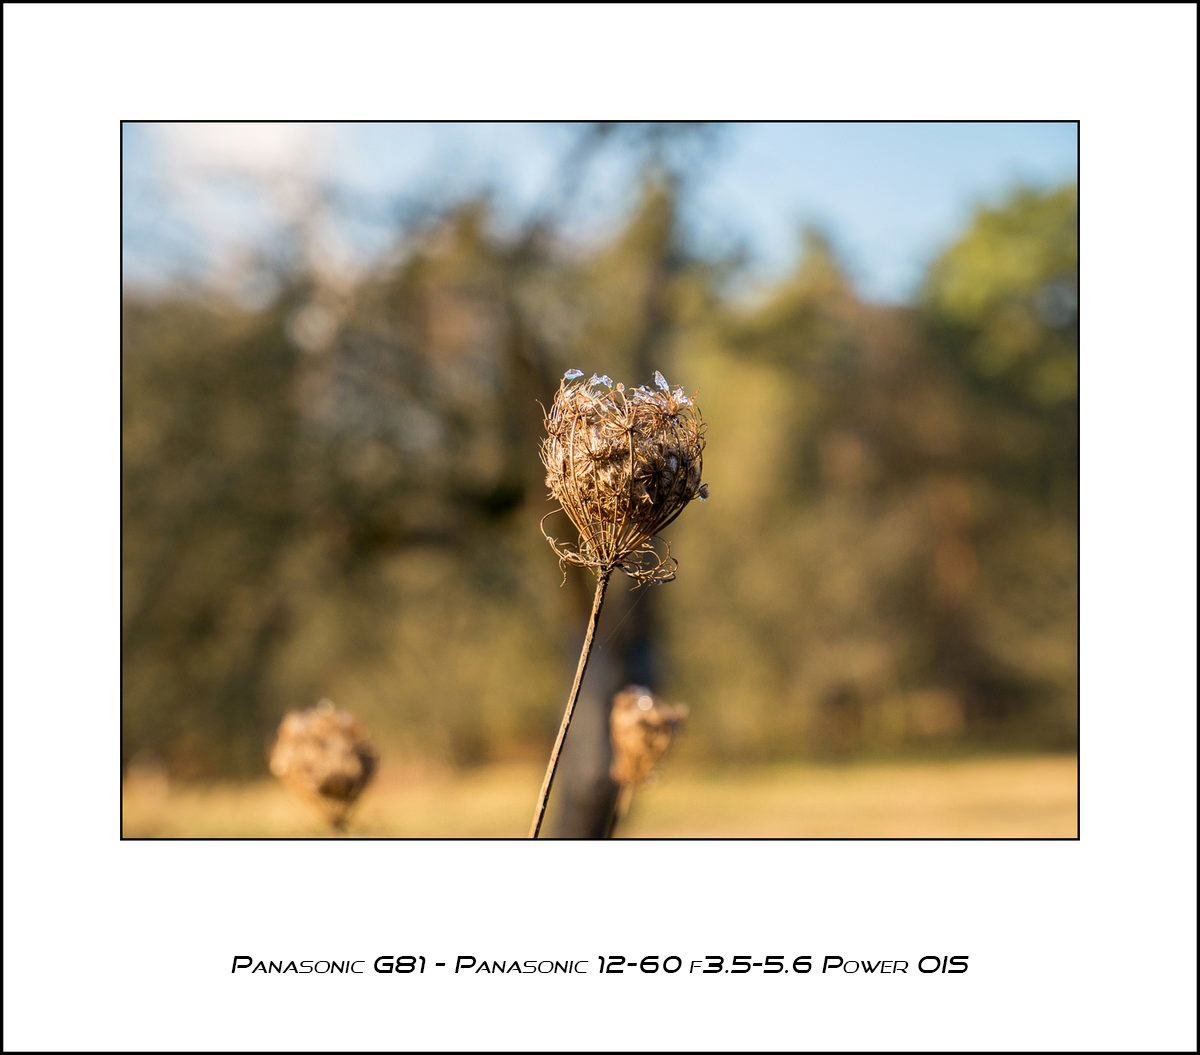 Panasonic G81 - Panasonic 12-60 f3.5-5.6 Power OIS